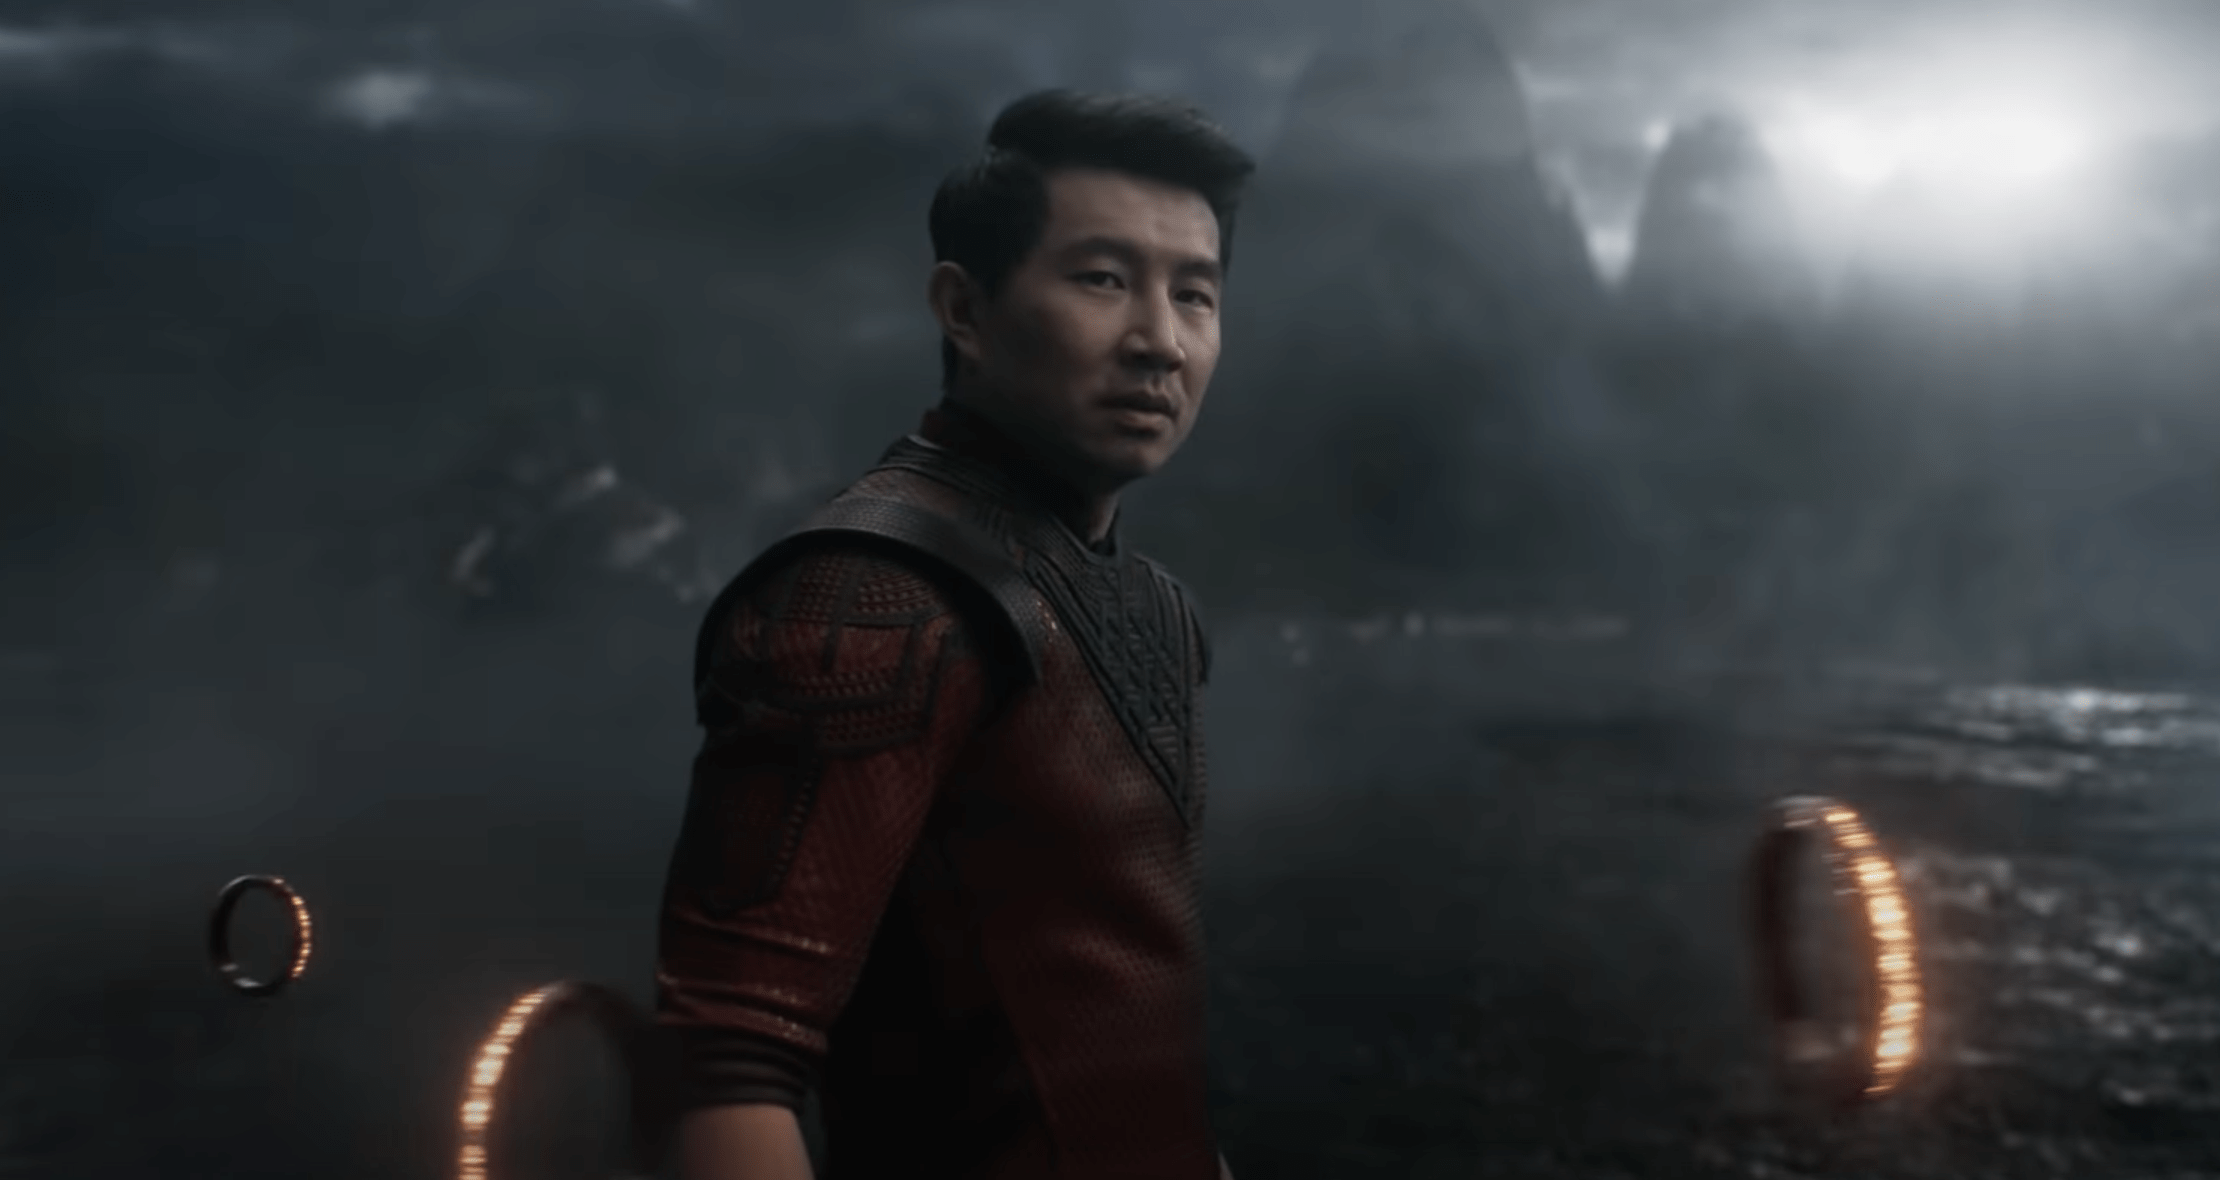 shang-chi easter eggs dragon scales